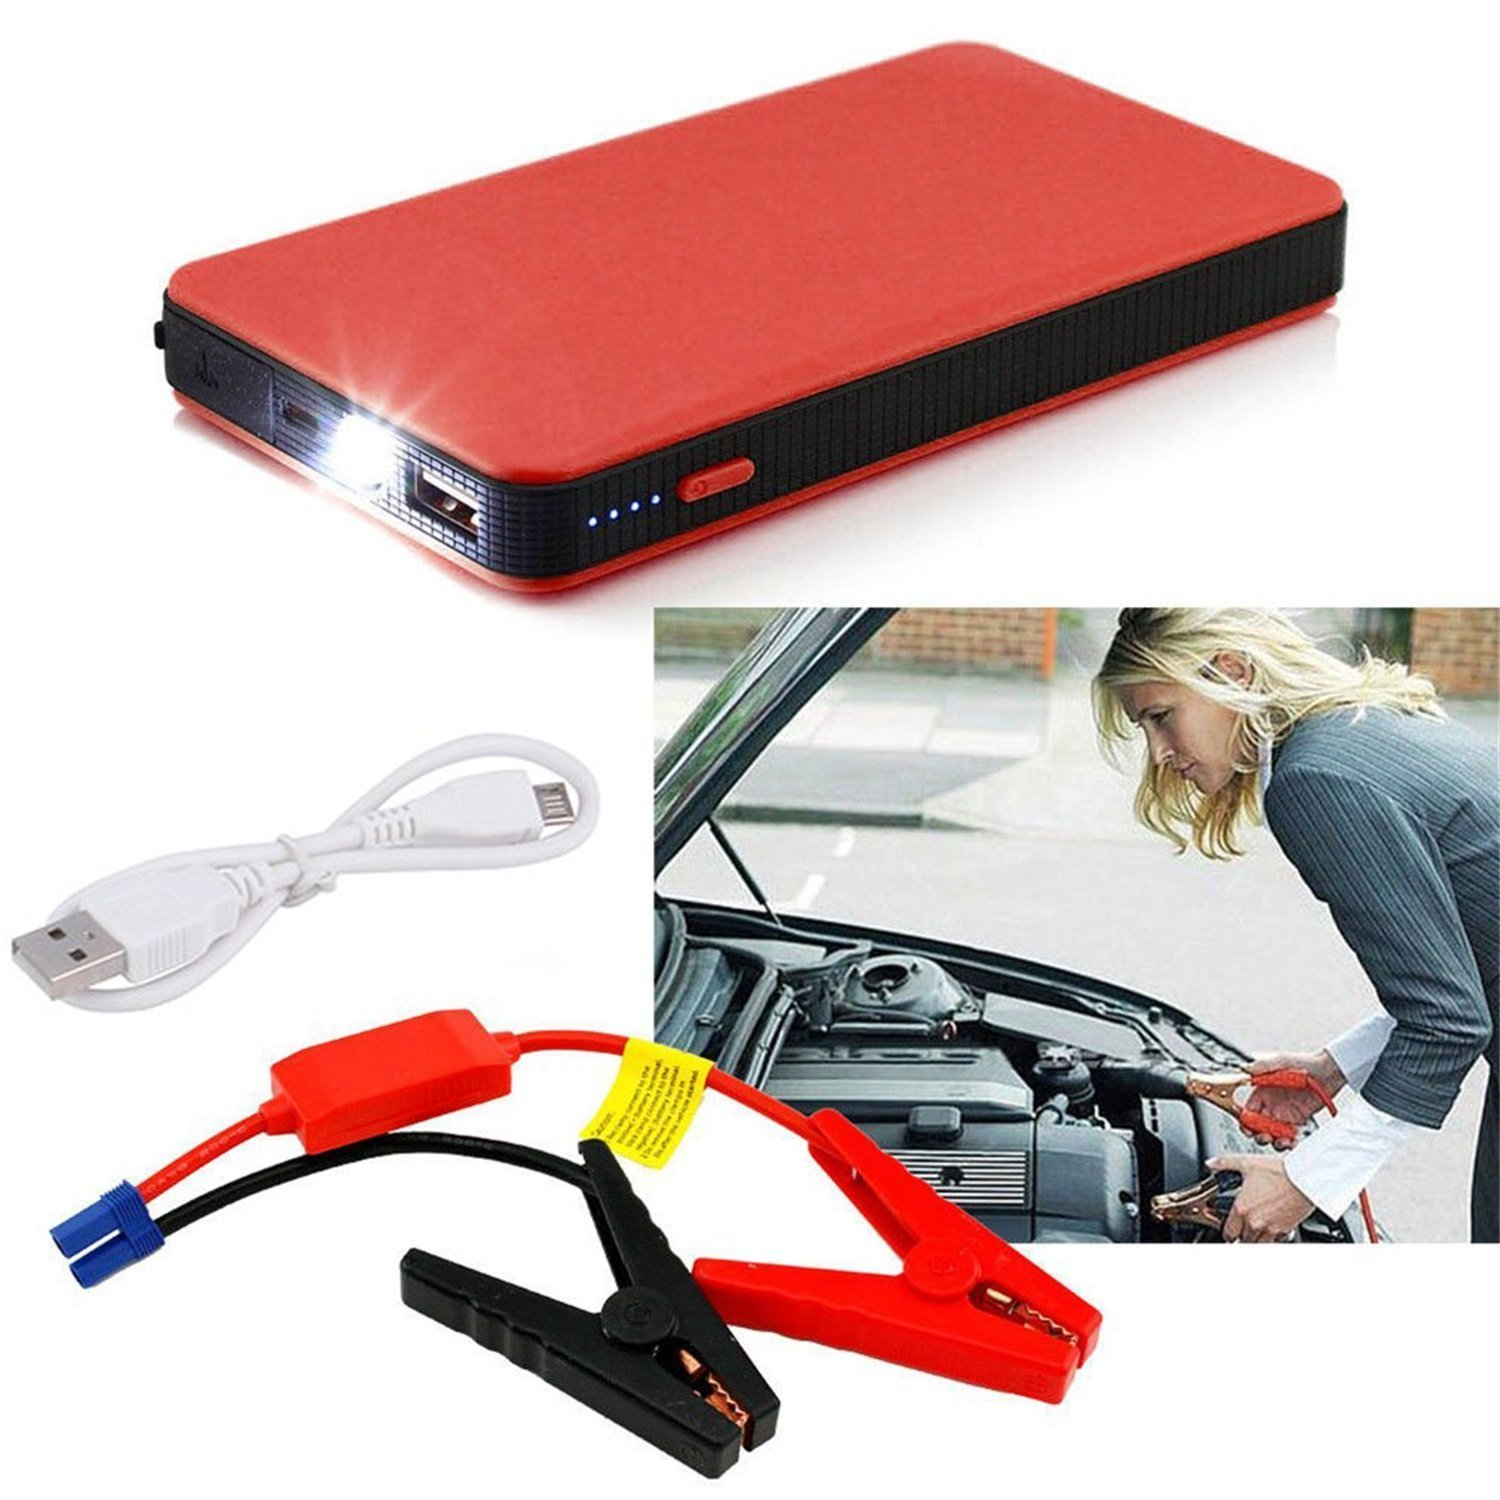 Car Jump Starter,12V 20000mAh Mini Portable Multifunctional Car Jump Starter Power Booster Battery Charger Emergency Start Charger Car Jump Starter Power Booster Battery Charger